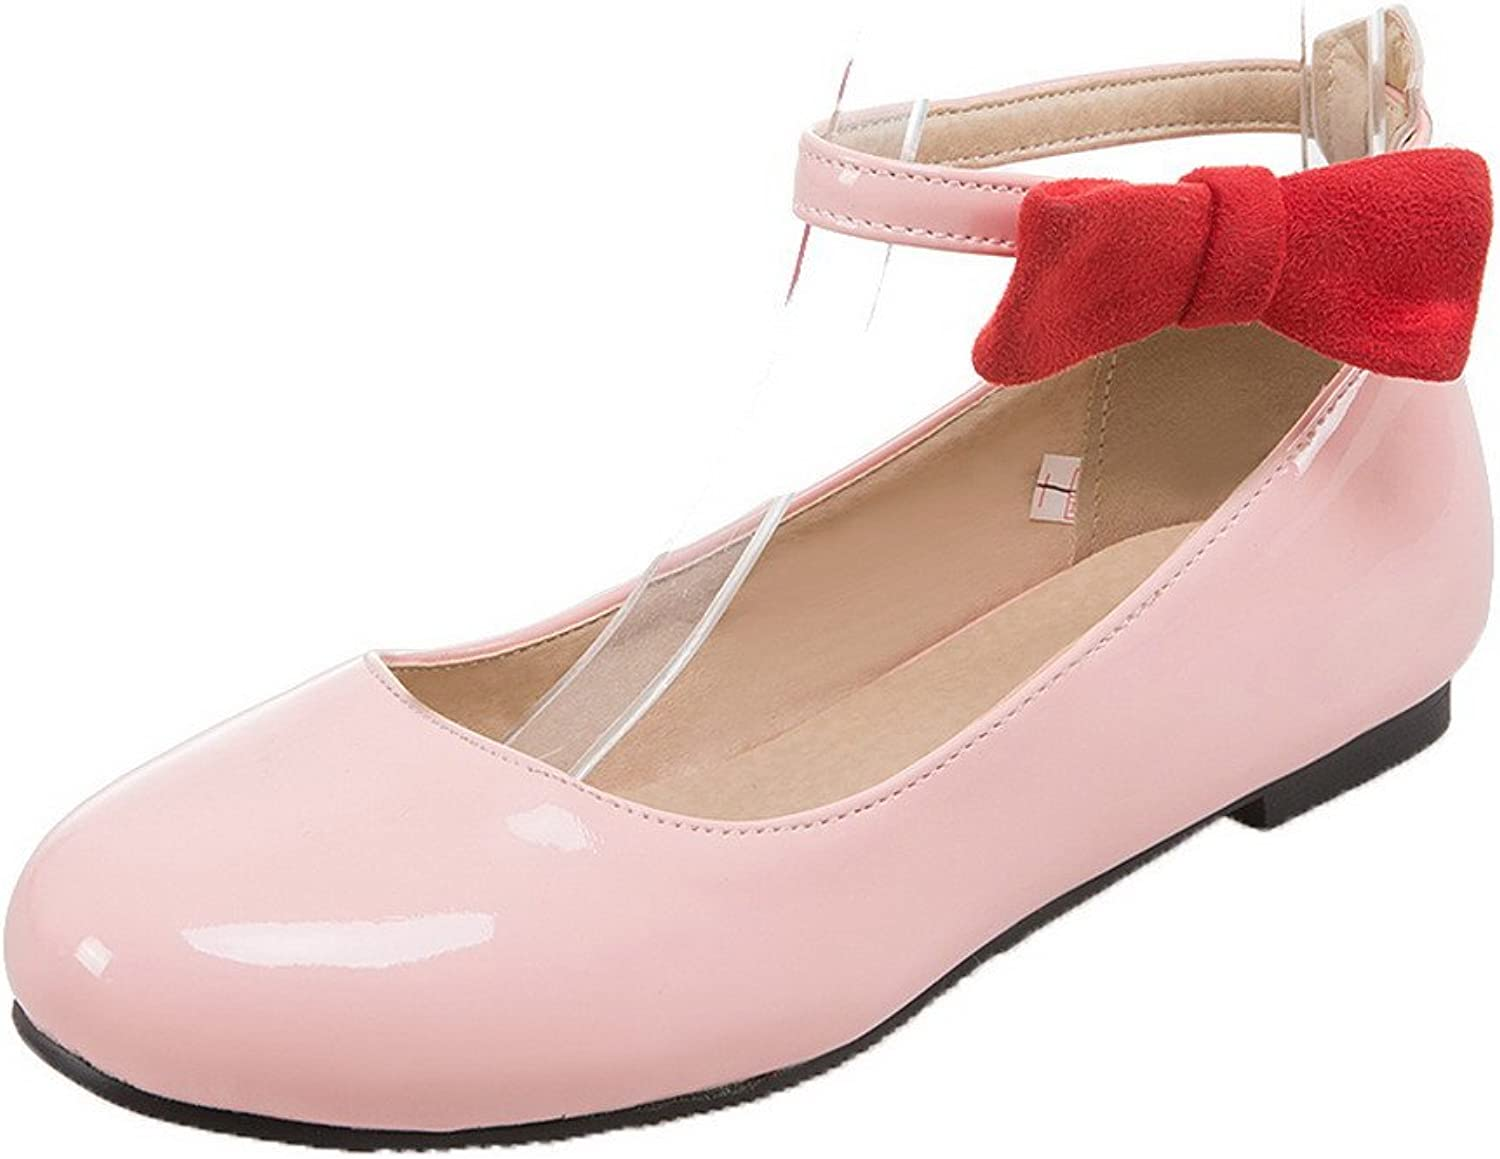 WeenFashion Women's Round Toe No-Heel Patent Leather Solid Buckle Pumps-shoes